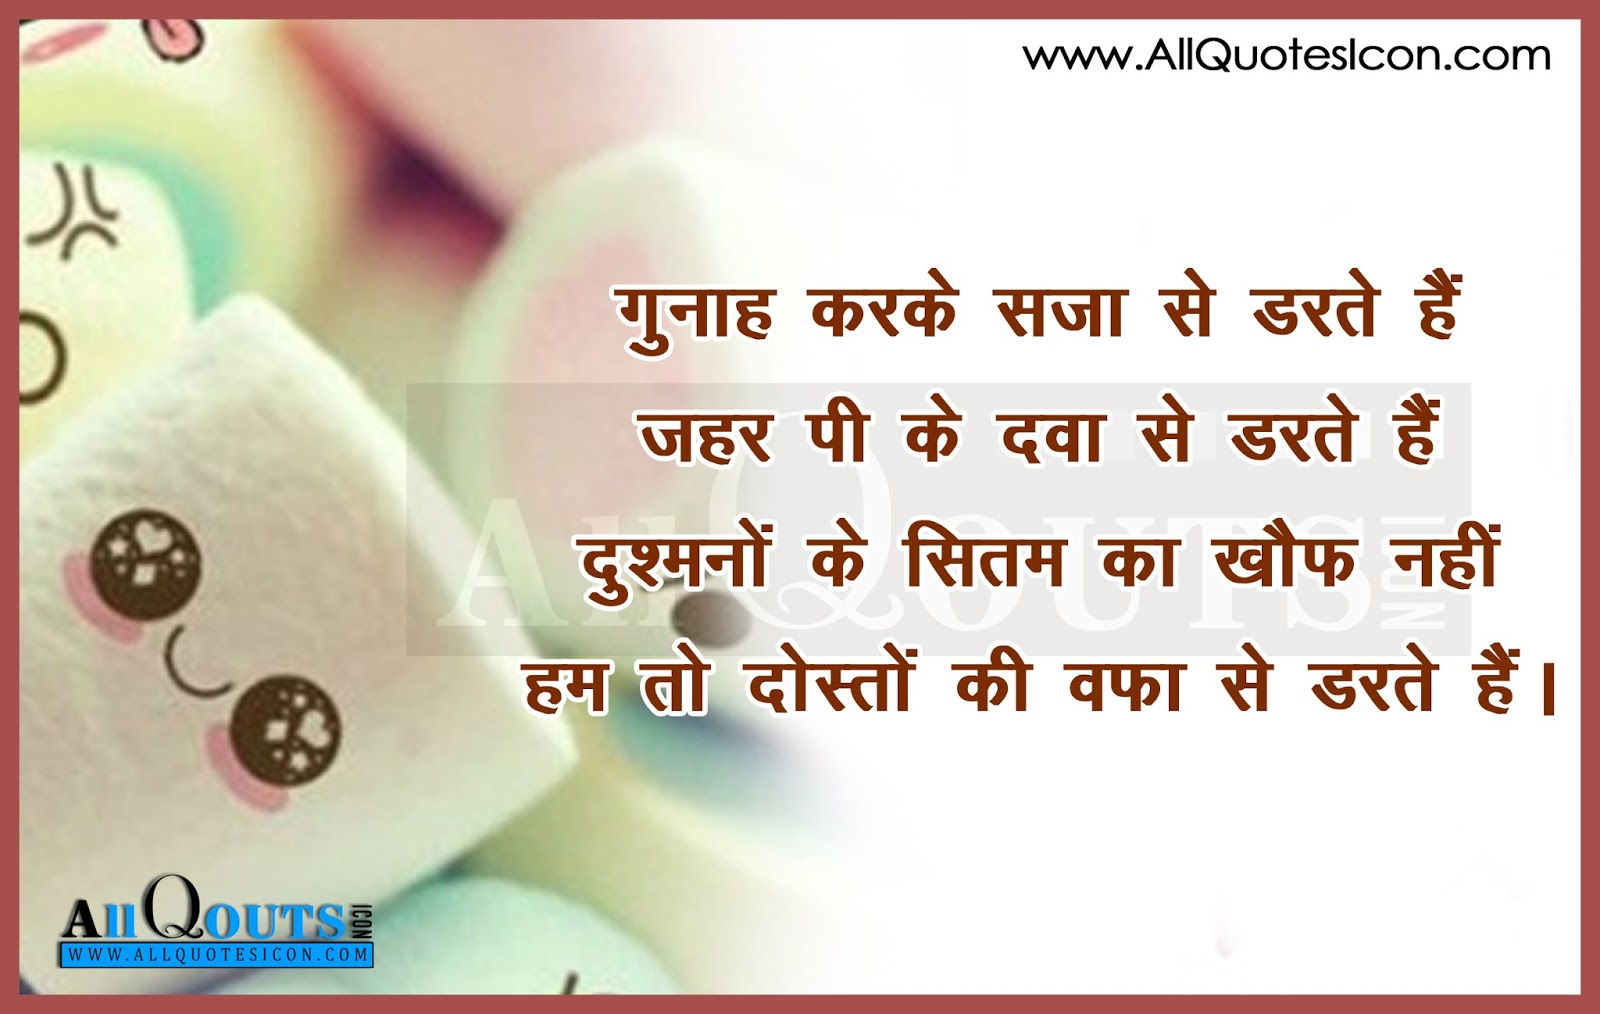 William Shakespeare Quotes In Hindi With Images T